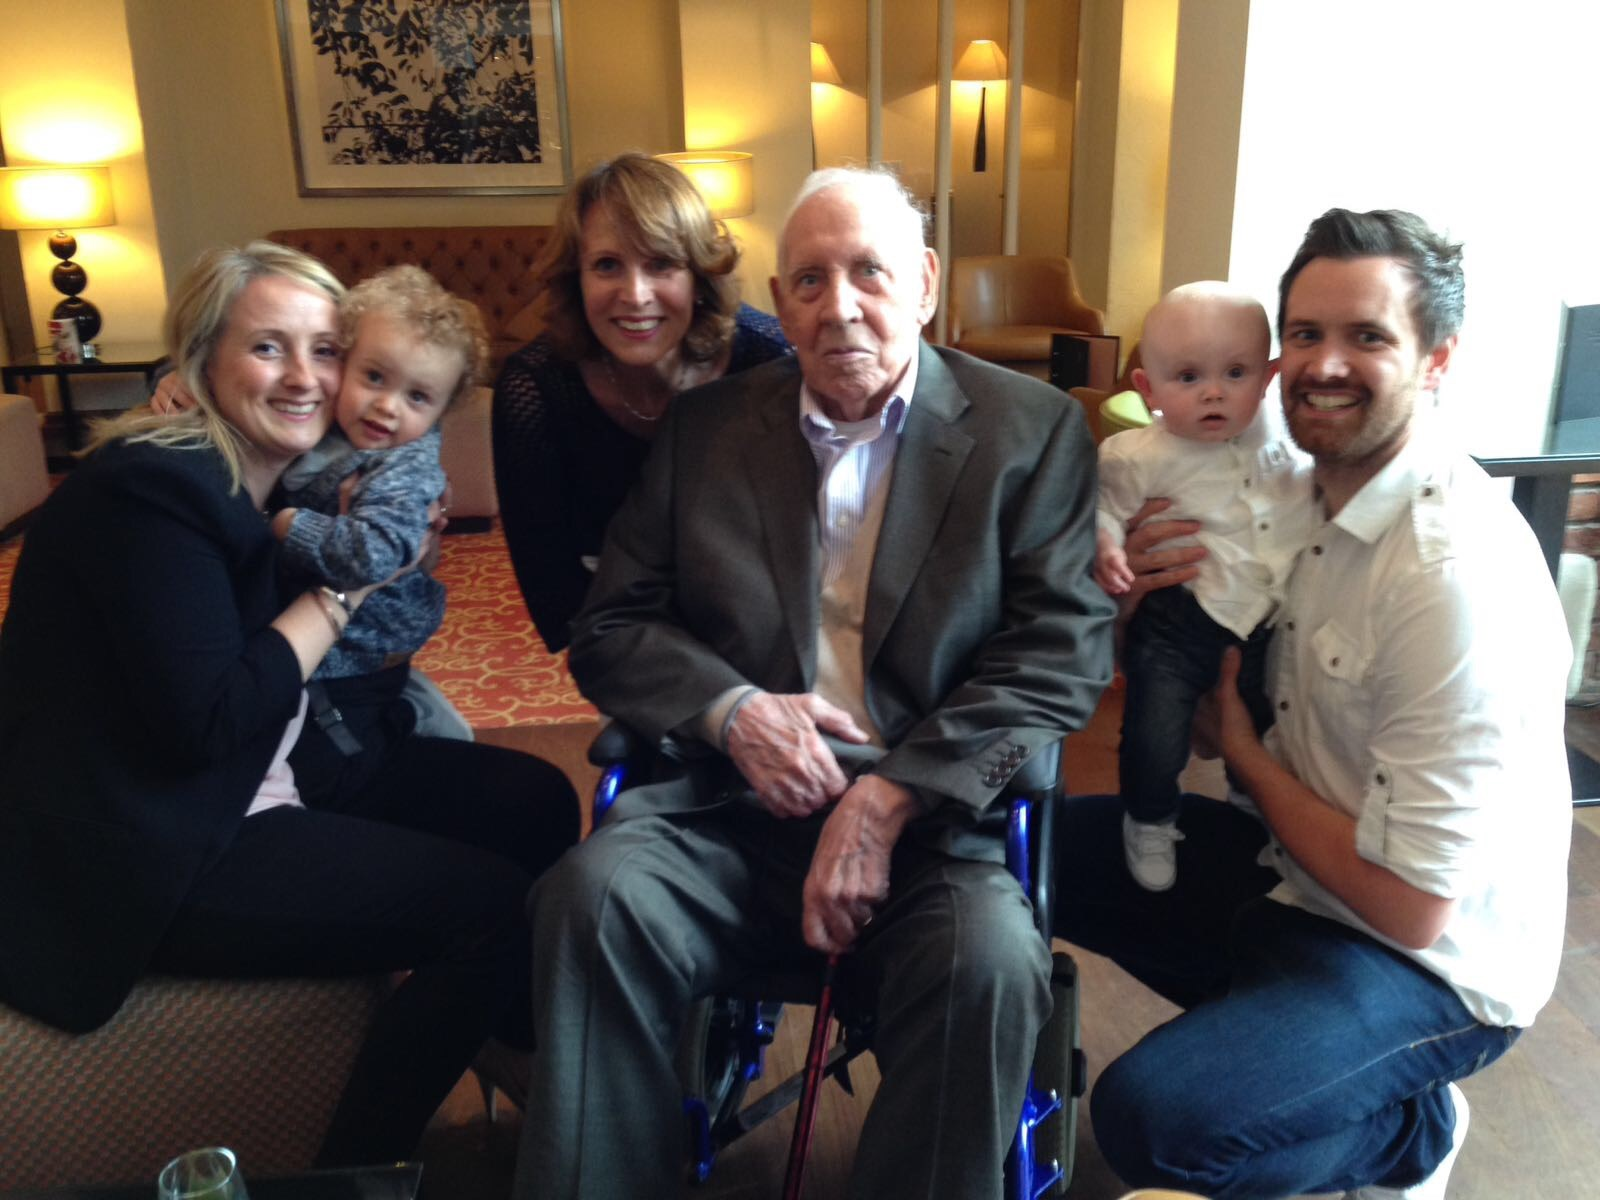 4 Generations together Celebrating Grandads 91st Birthday!